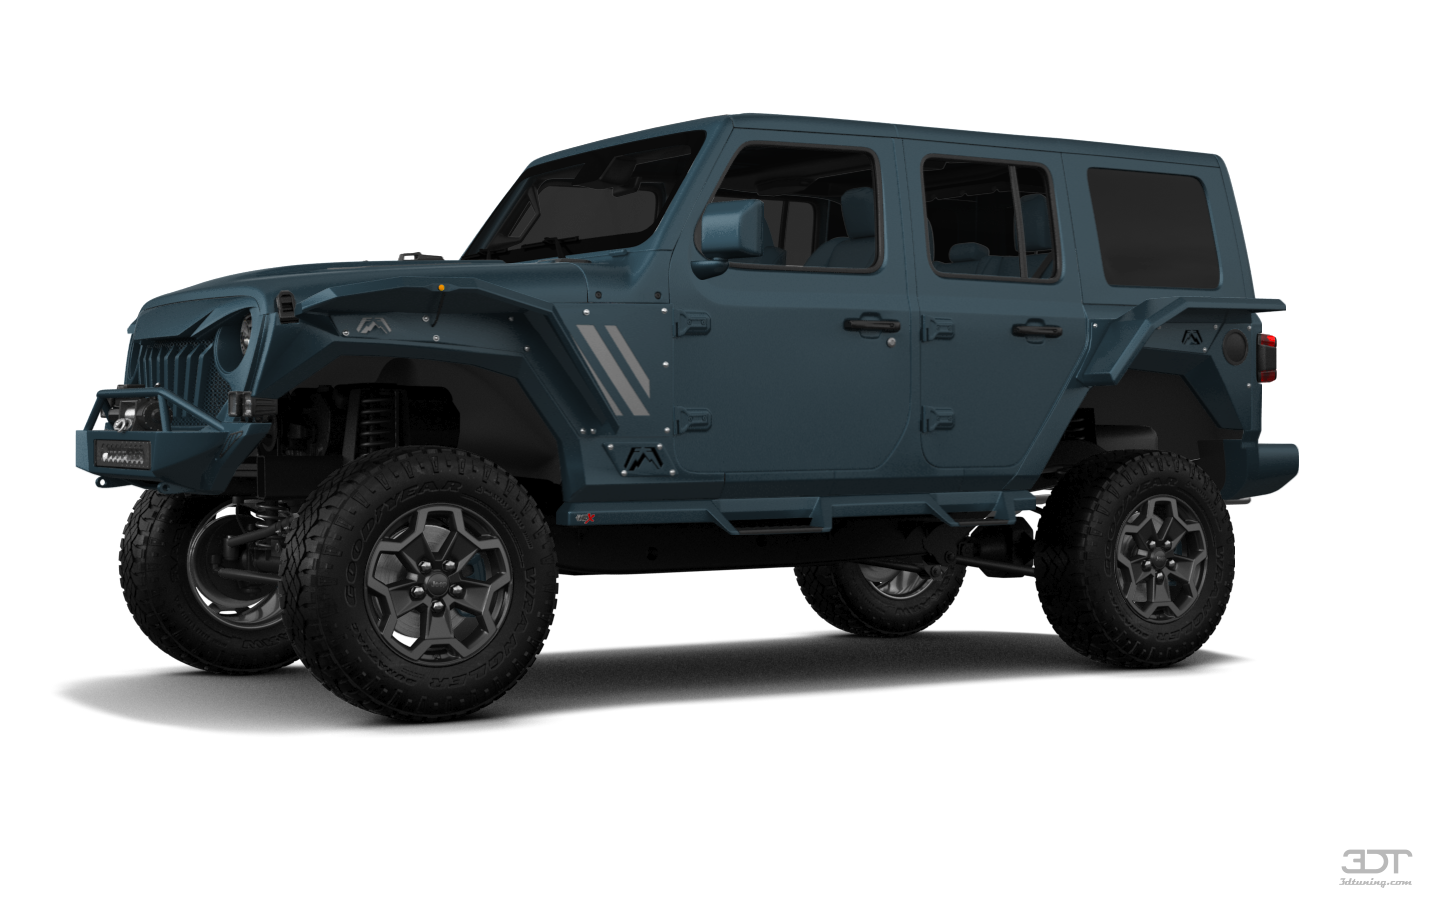 Jeep Wrangler Rubicon JL 4 Door SUV 2017 tuning